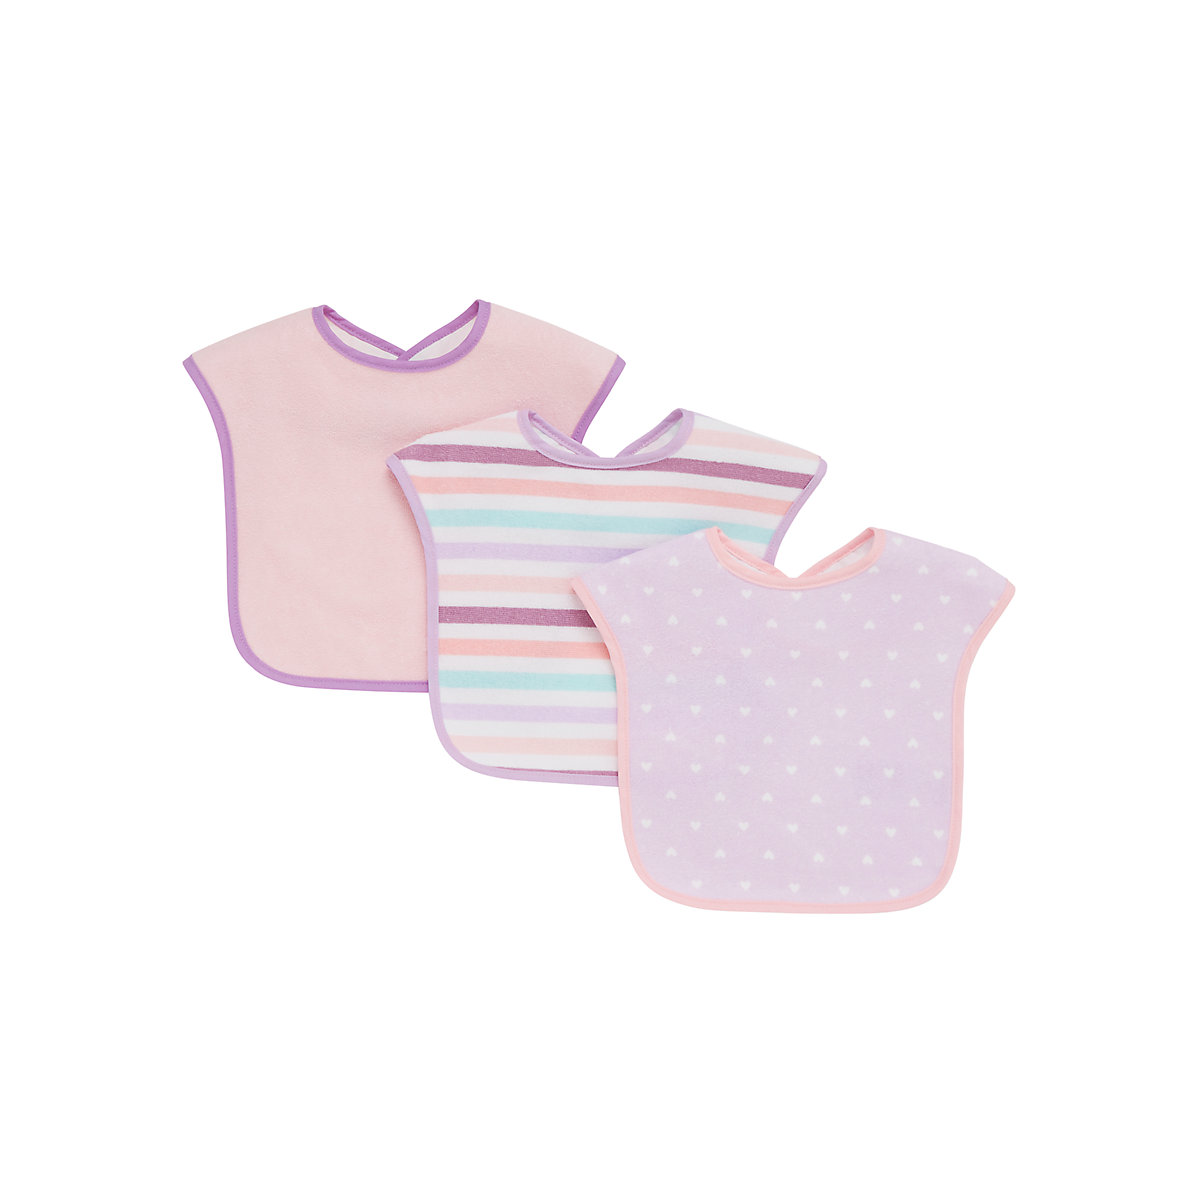 mothercare pink. hearts and stripes towelling bibs - 3 pack